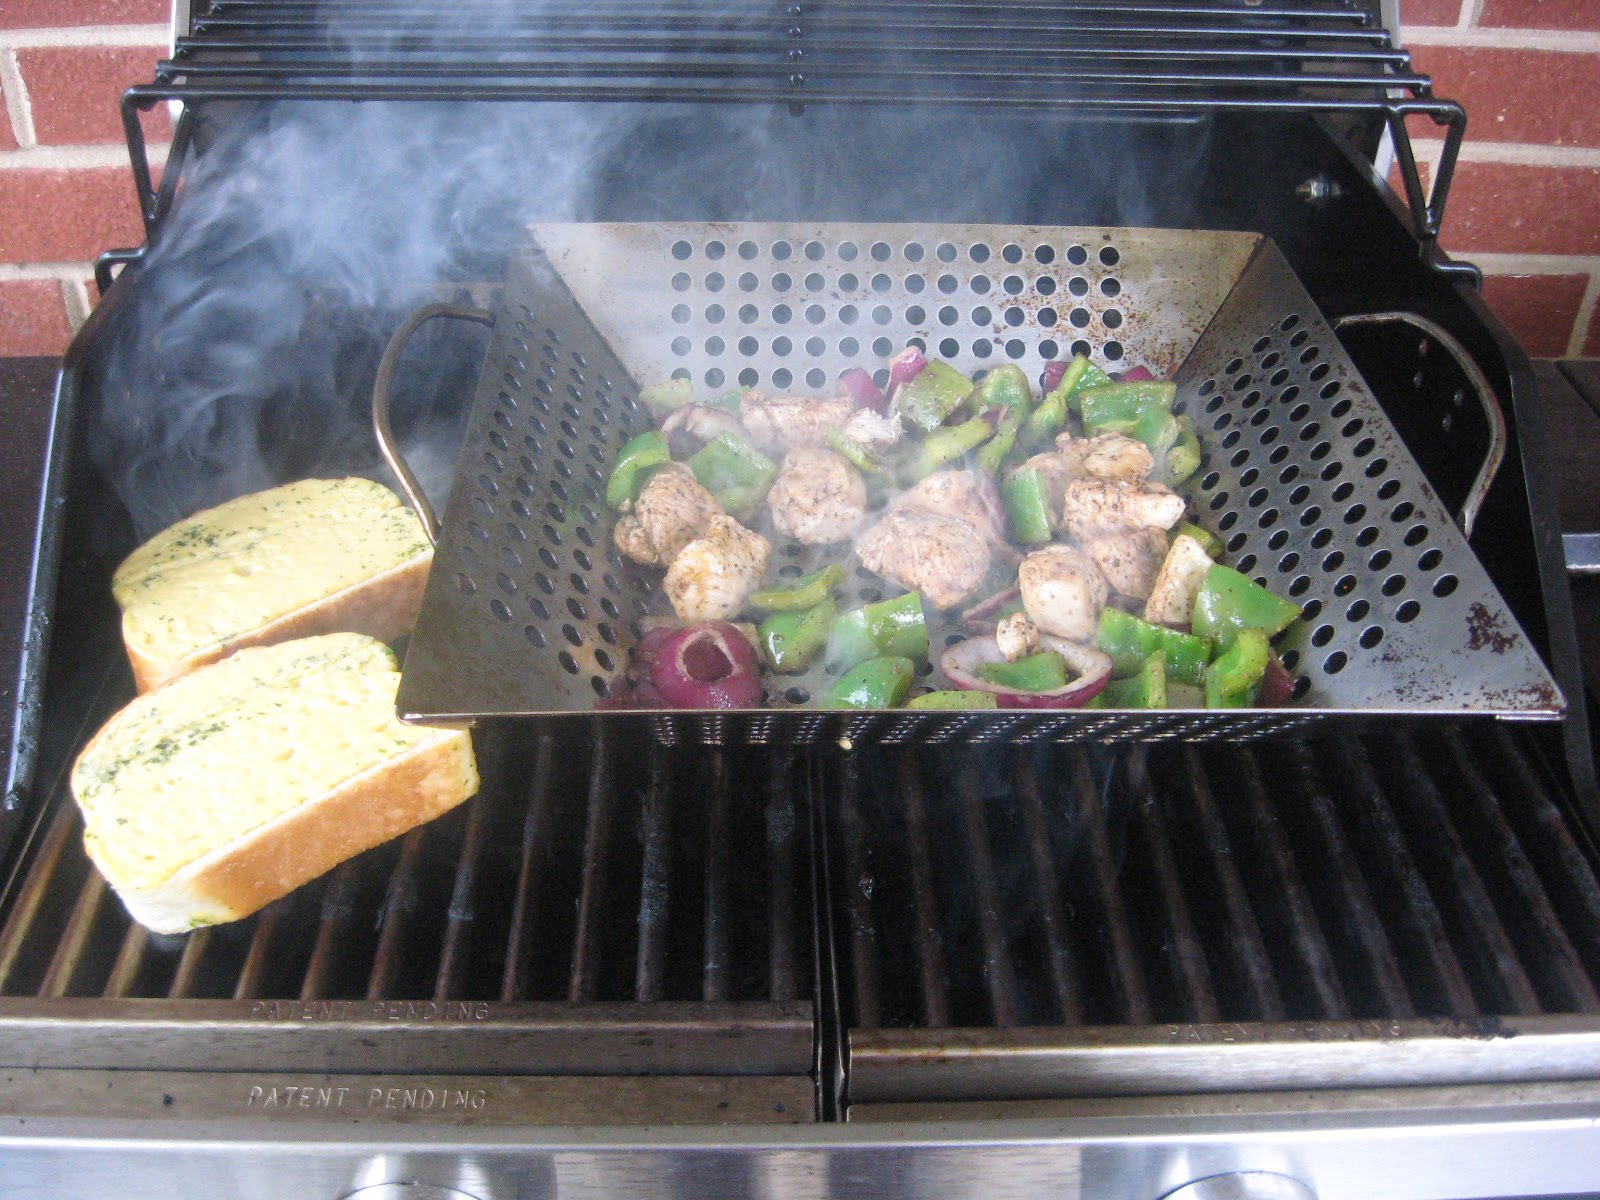 Char-broil Charcoal - Compare Prices on Char-broil Charcoal in the